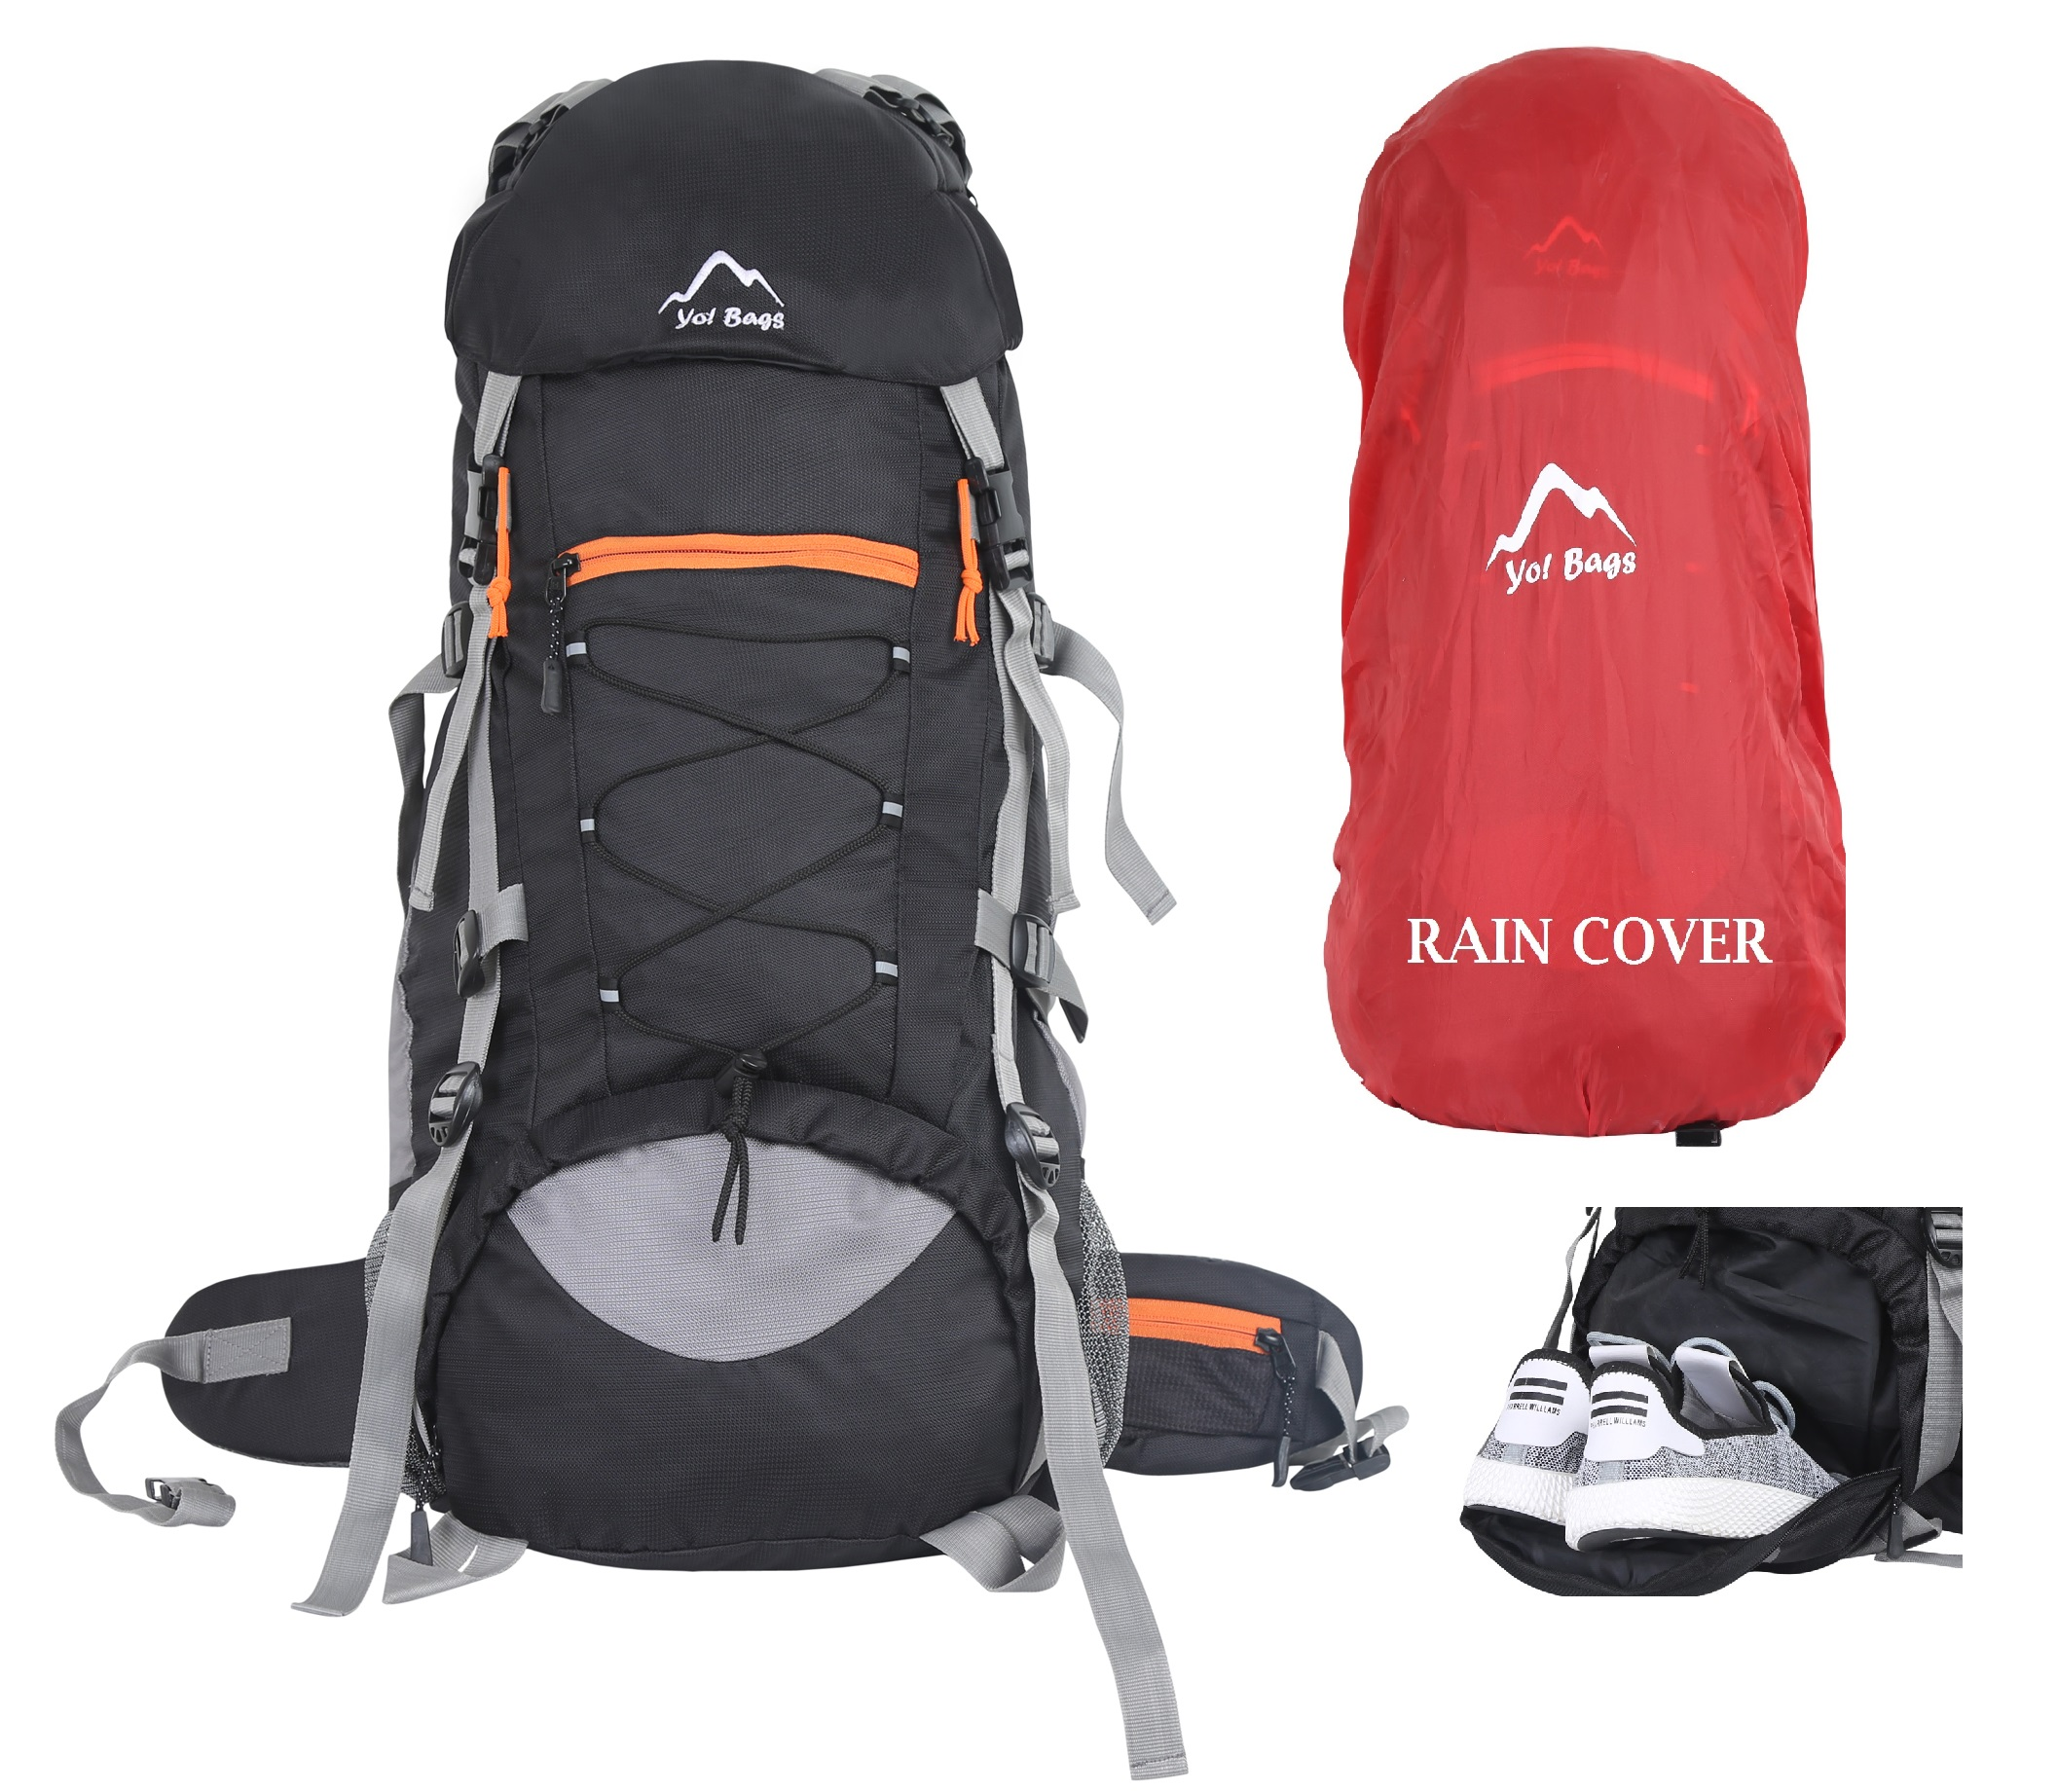 Bags Hiking Bag in Rucksack 65 ltr Travel Backpack for Adventure Camping Trekking Bag with Rain Cover  Black by YOI